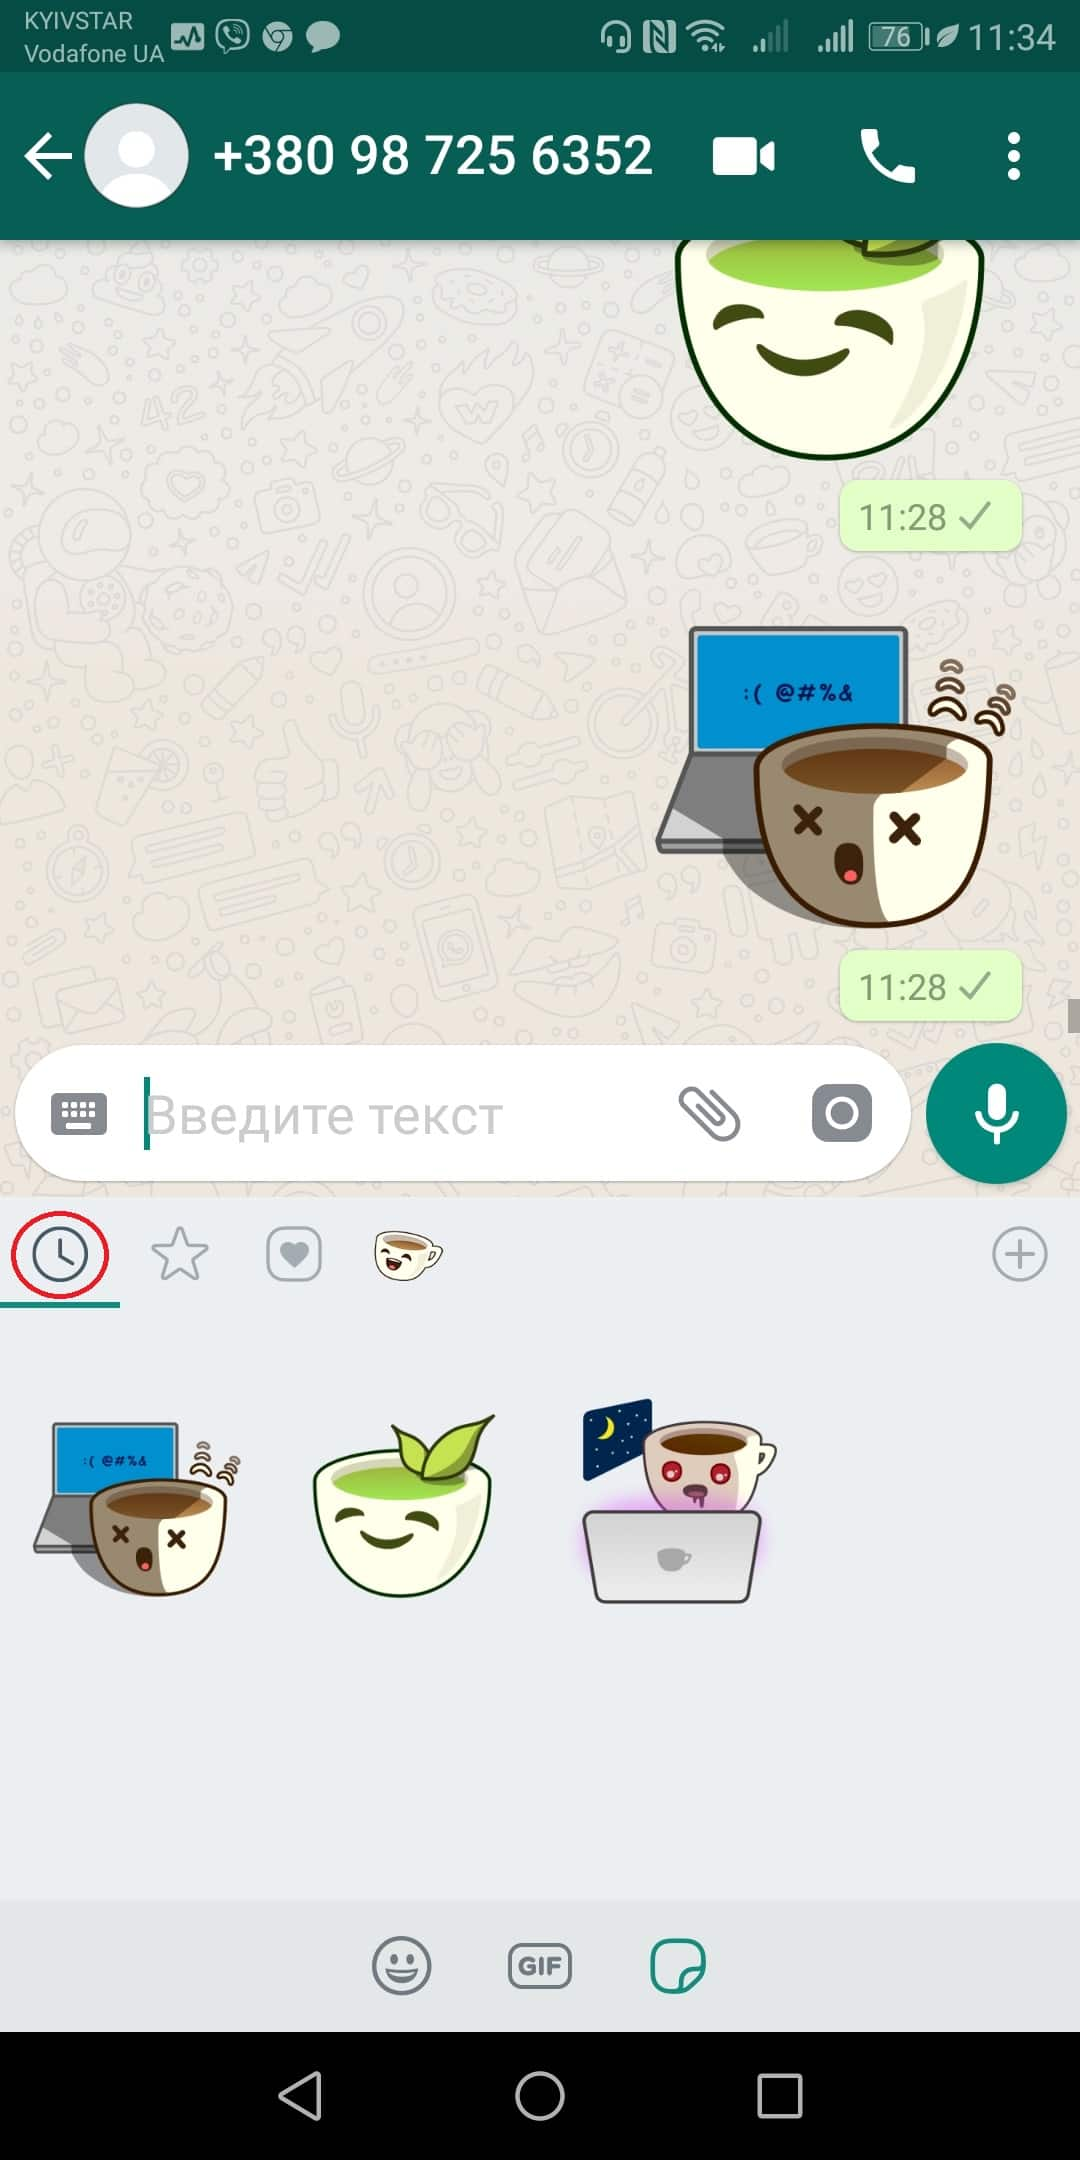 Картинка 2 В WhatsApp появились стикеры! Спешите узнать, как ими пользоваться!